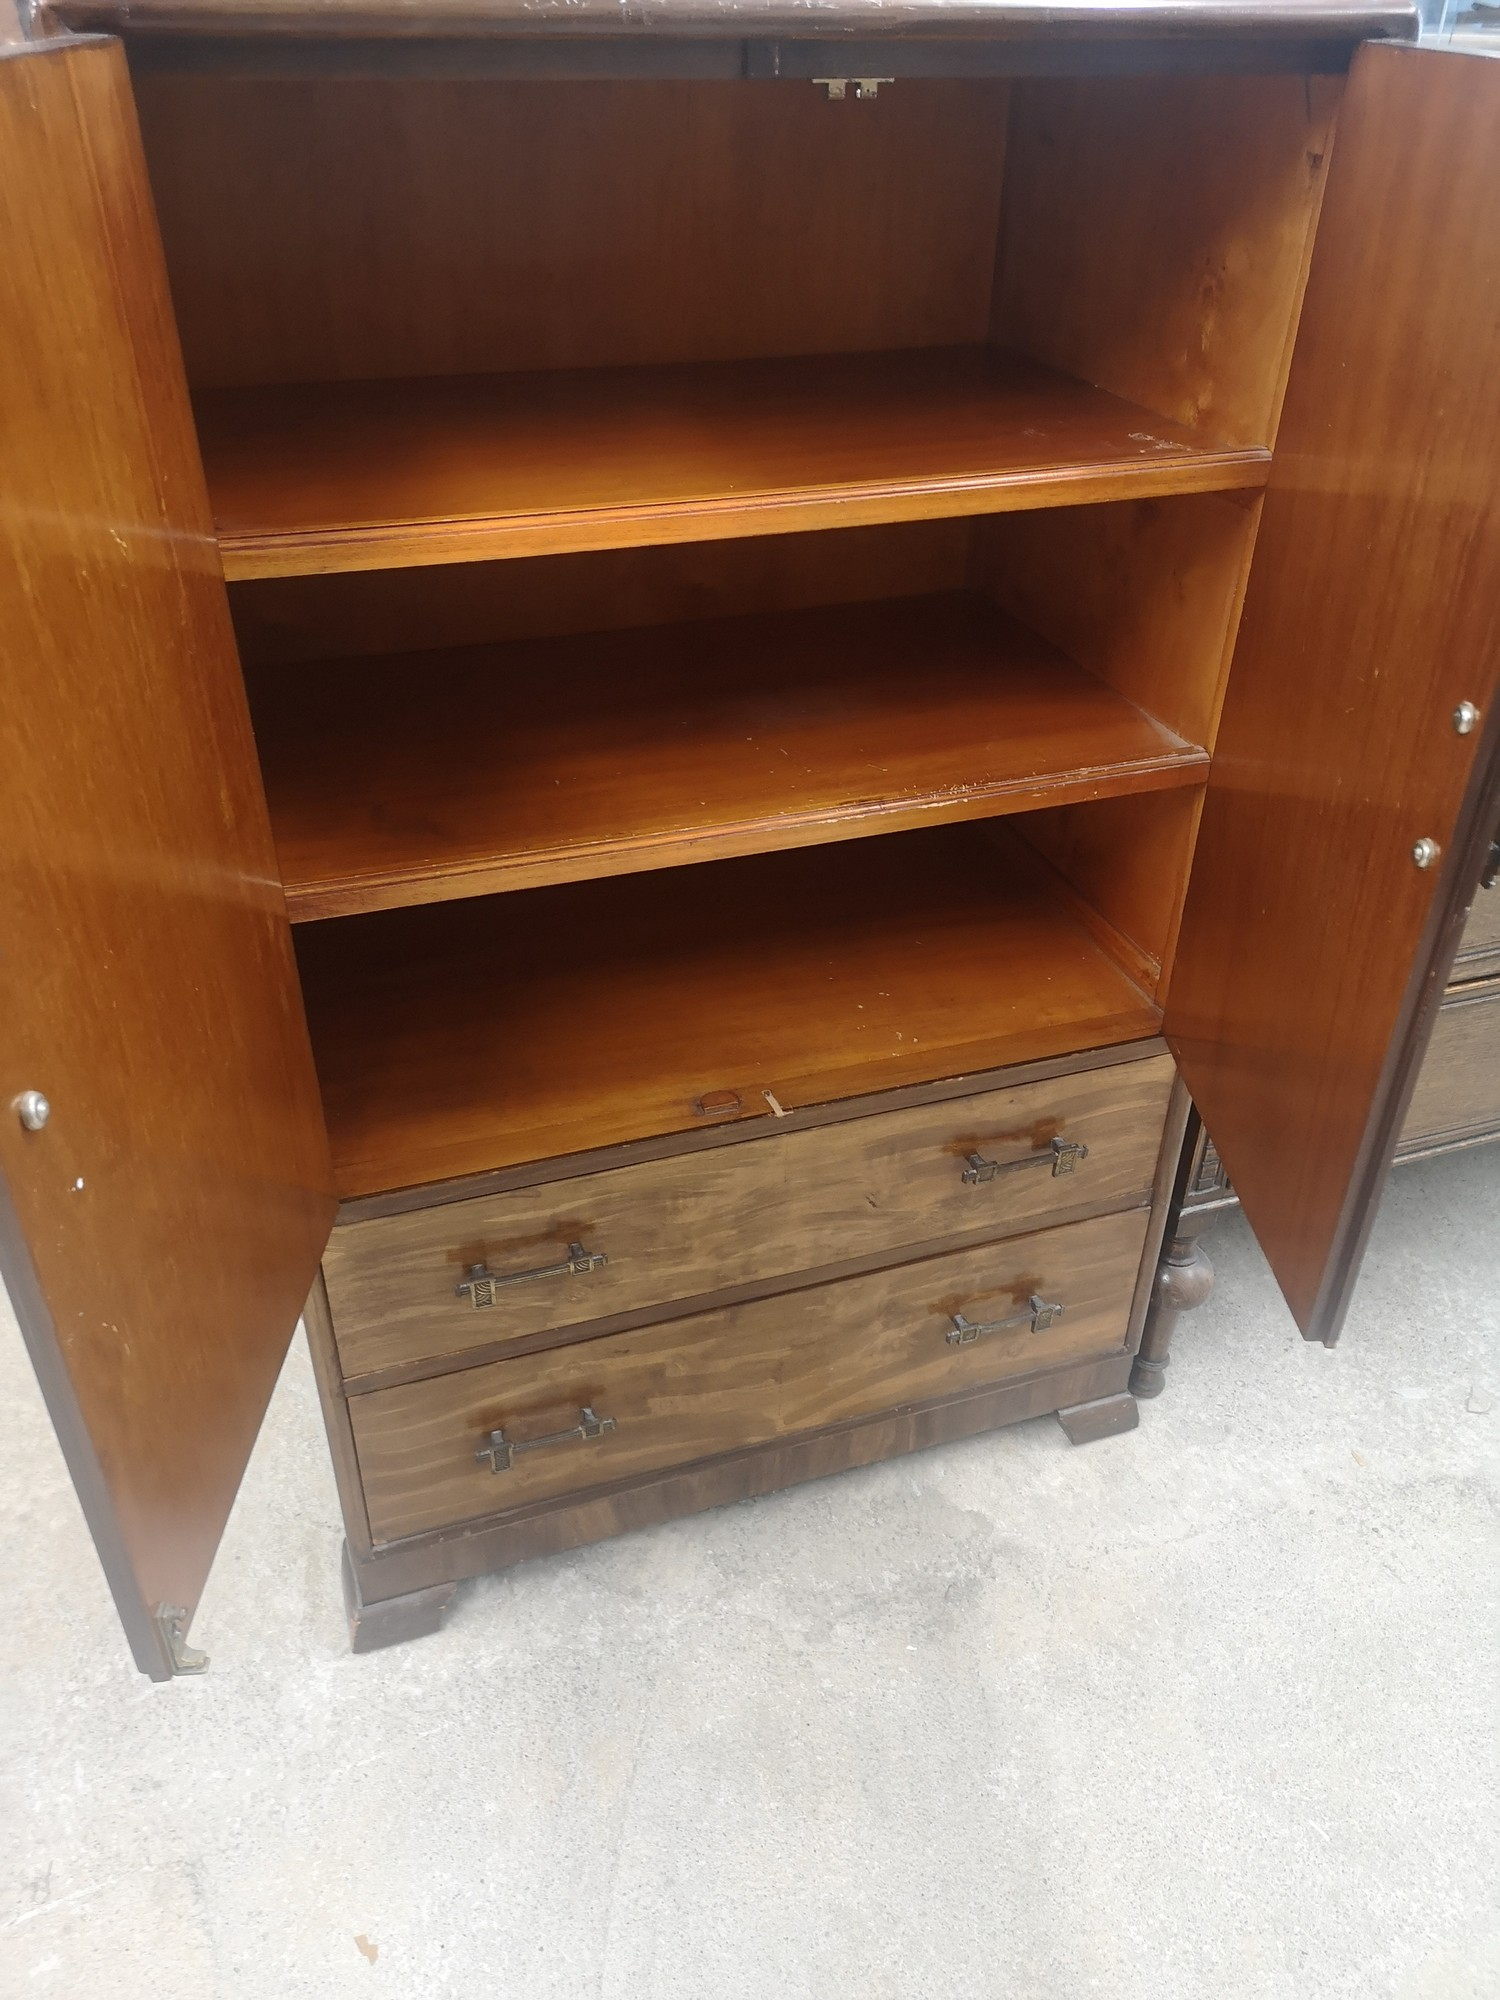 1940s 50s 2 door tall boy with fitted interior. - Image 2 of 2